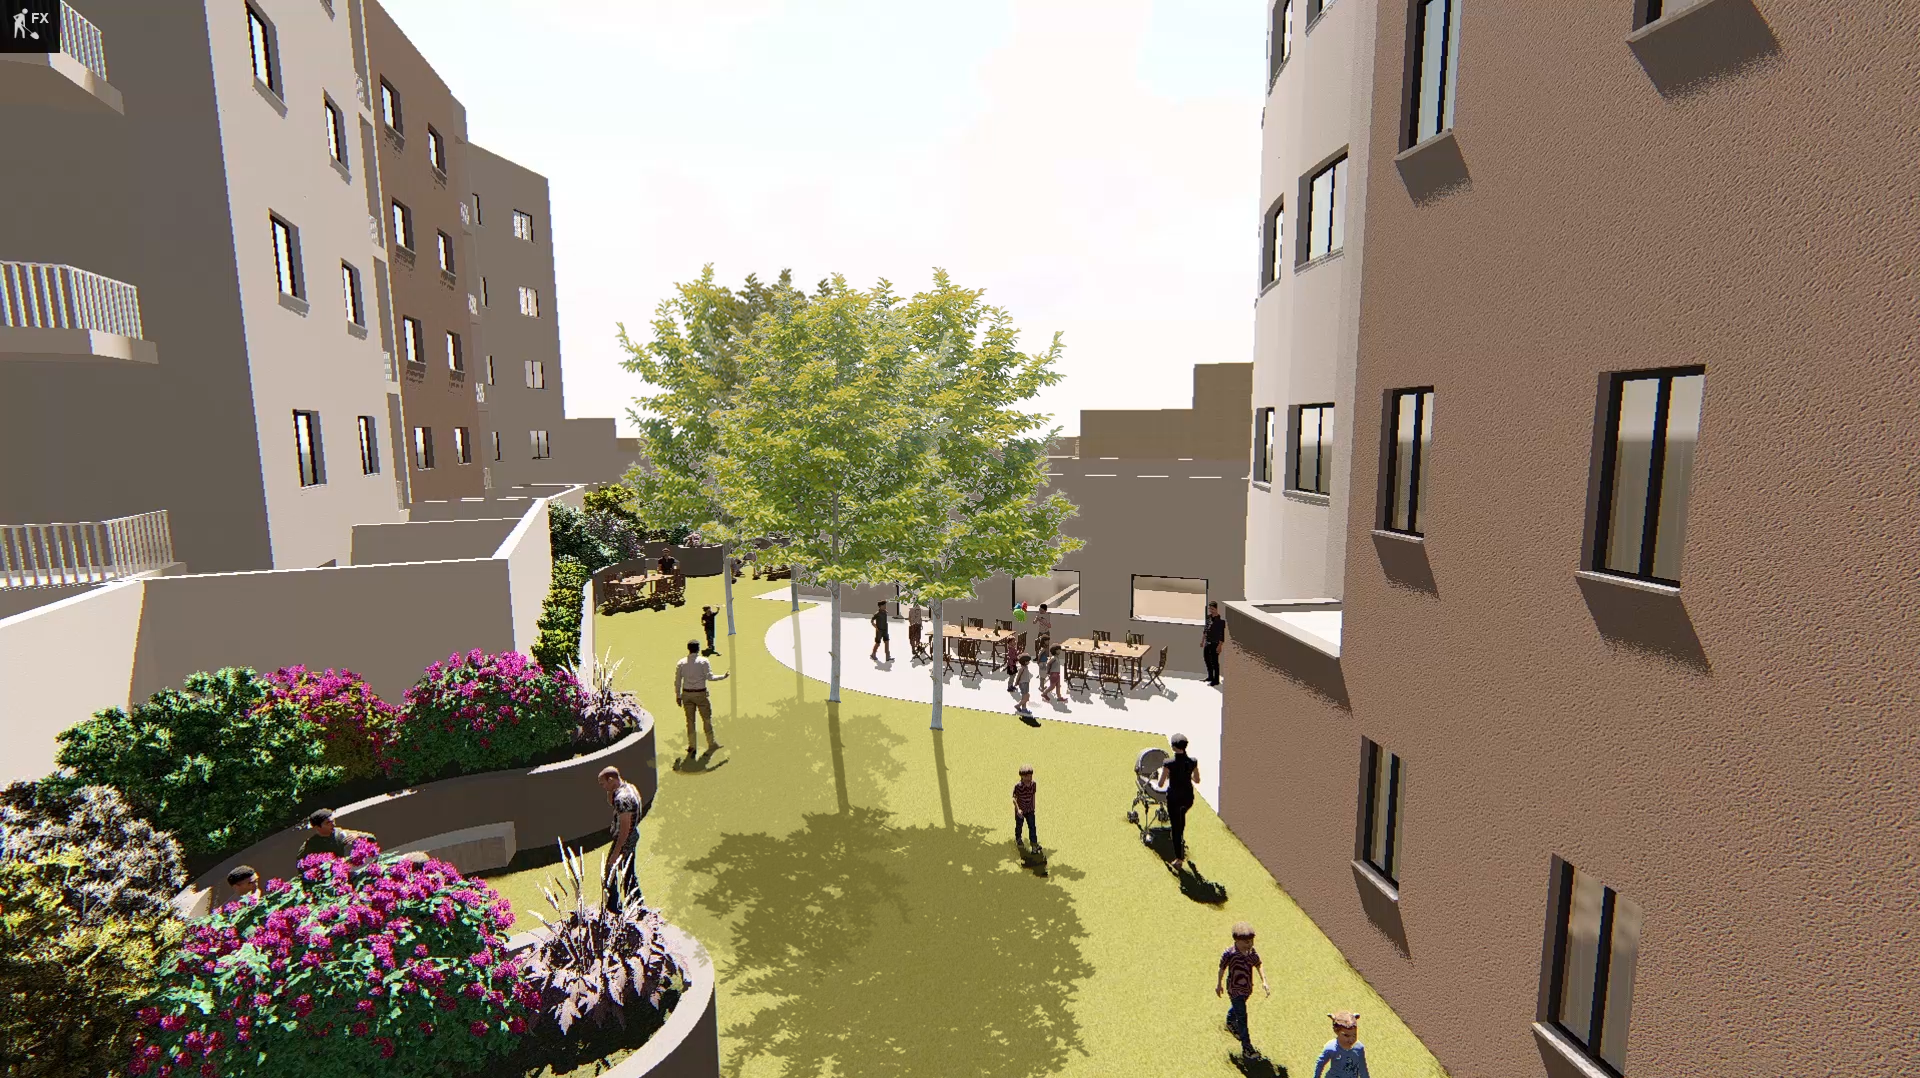 Affordable housing project in outer fringes of Fgura